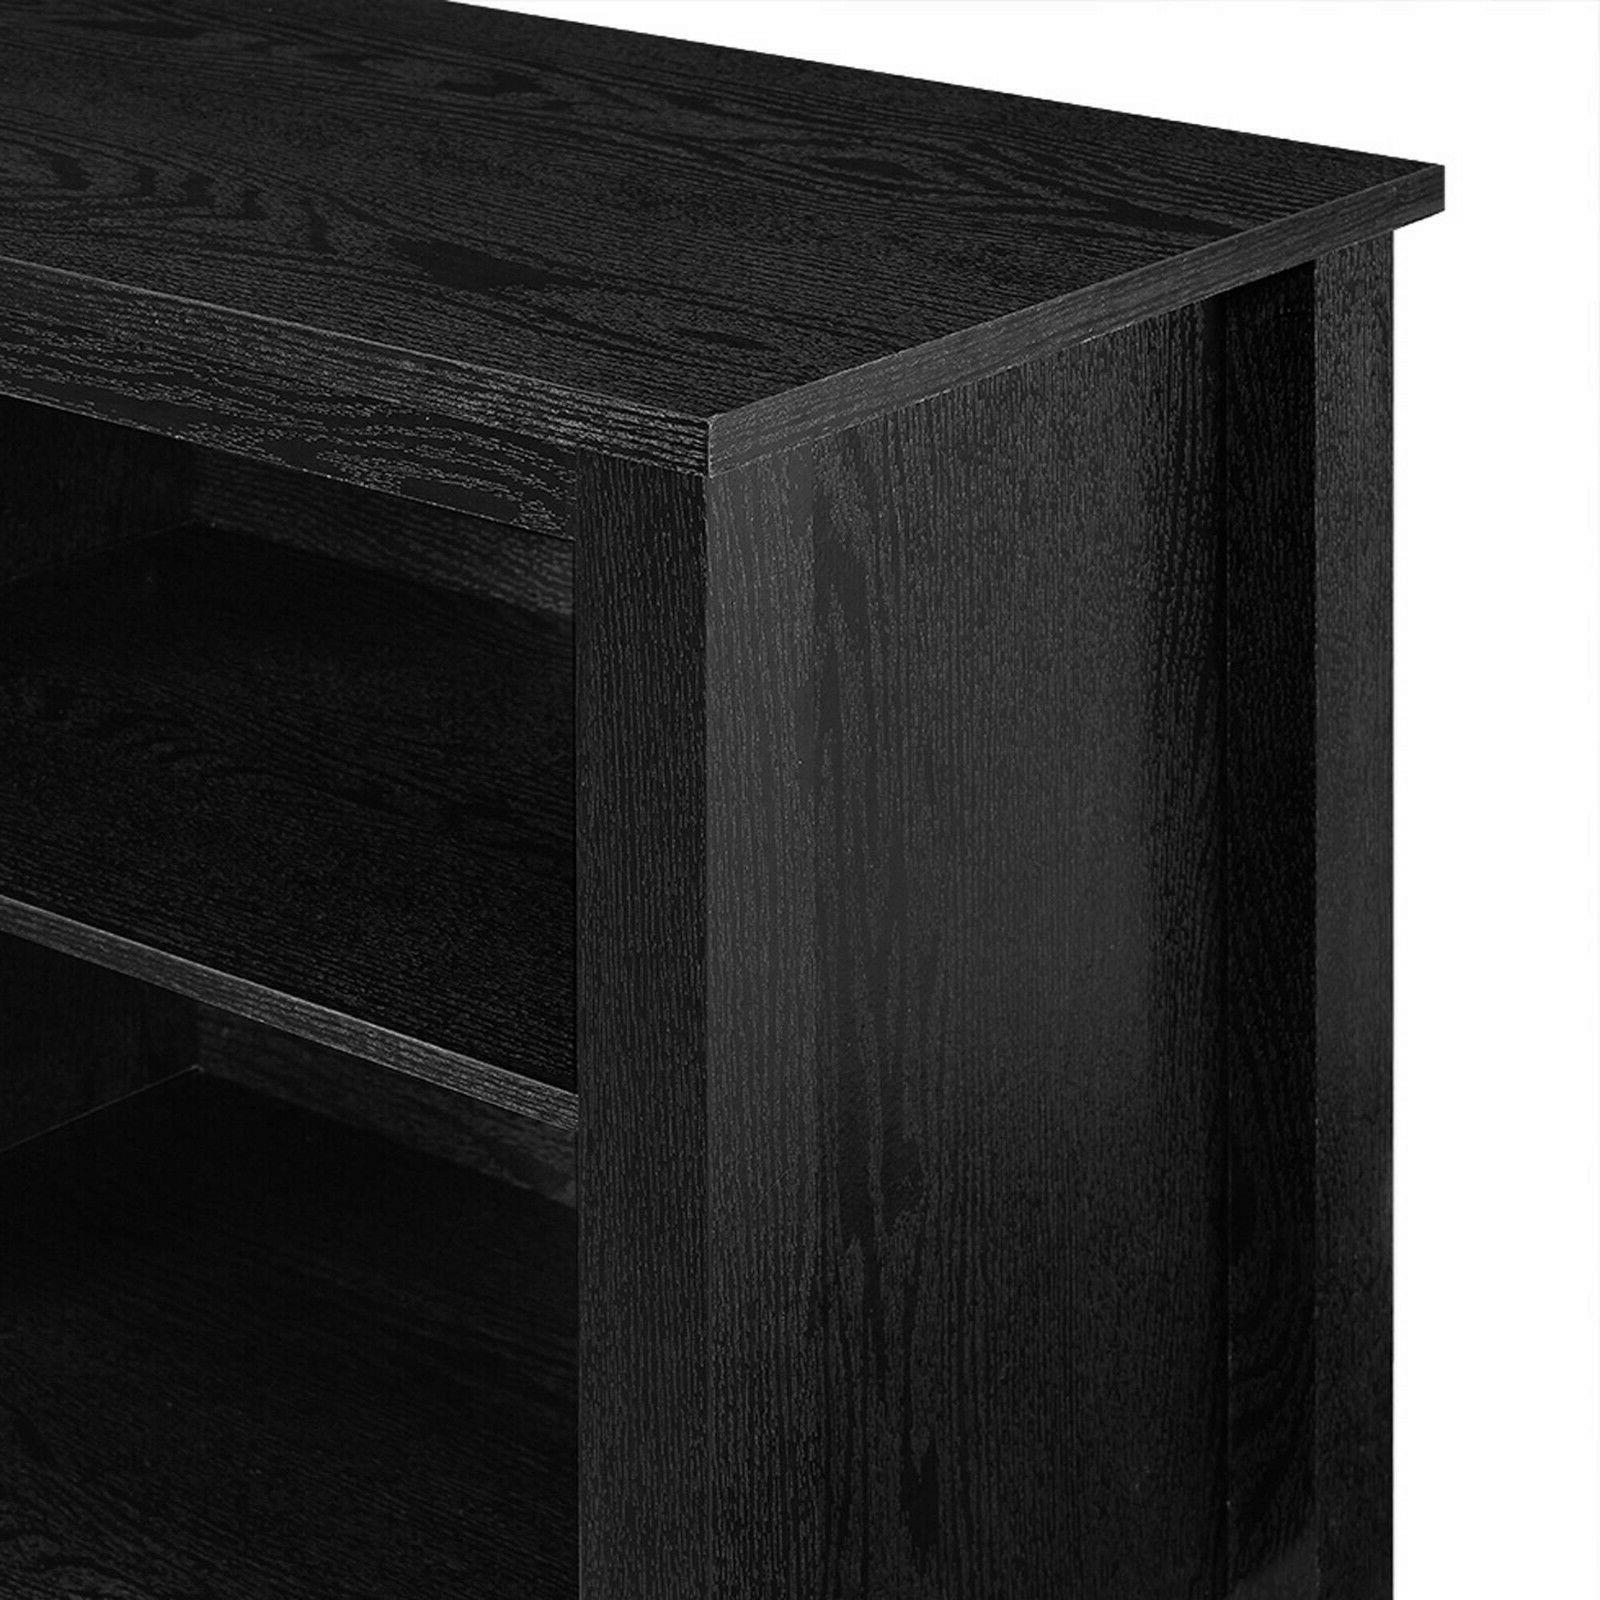 FIREPLACE ELECTRIC TV STAND Media Entertainment